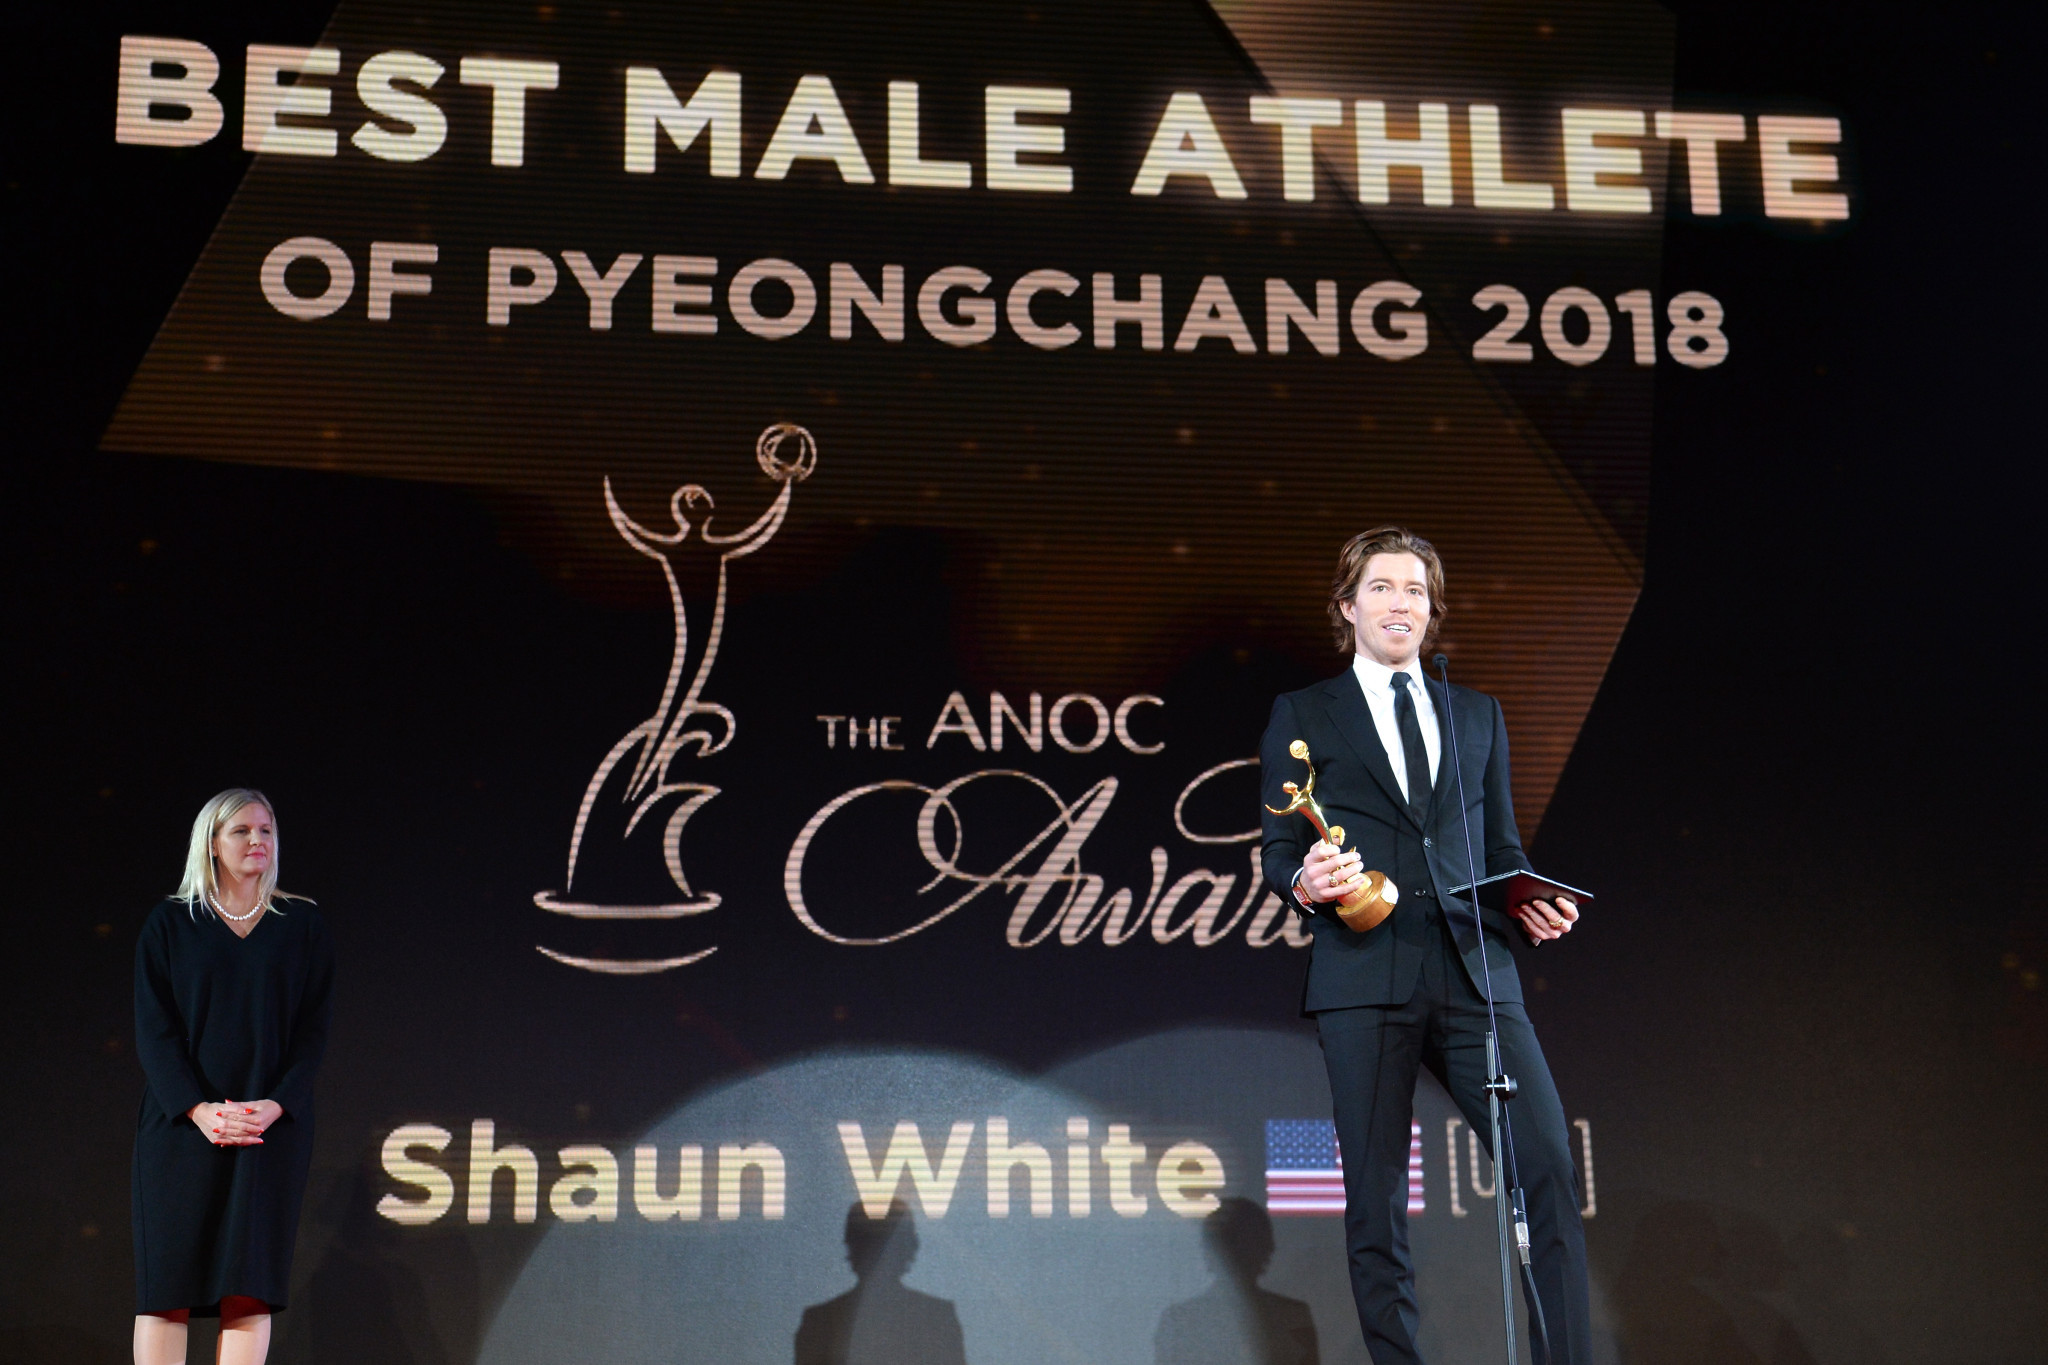 Shaun White was named best male athlete of Pyeongchang 2018 ©Getty Images